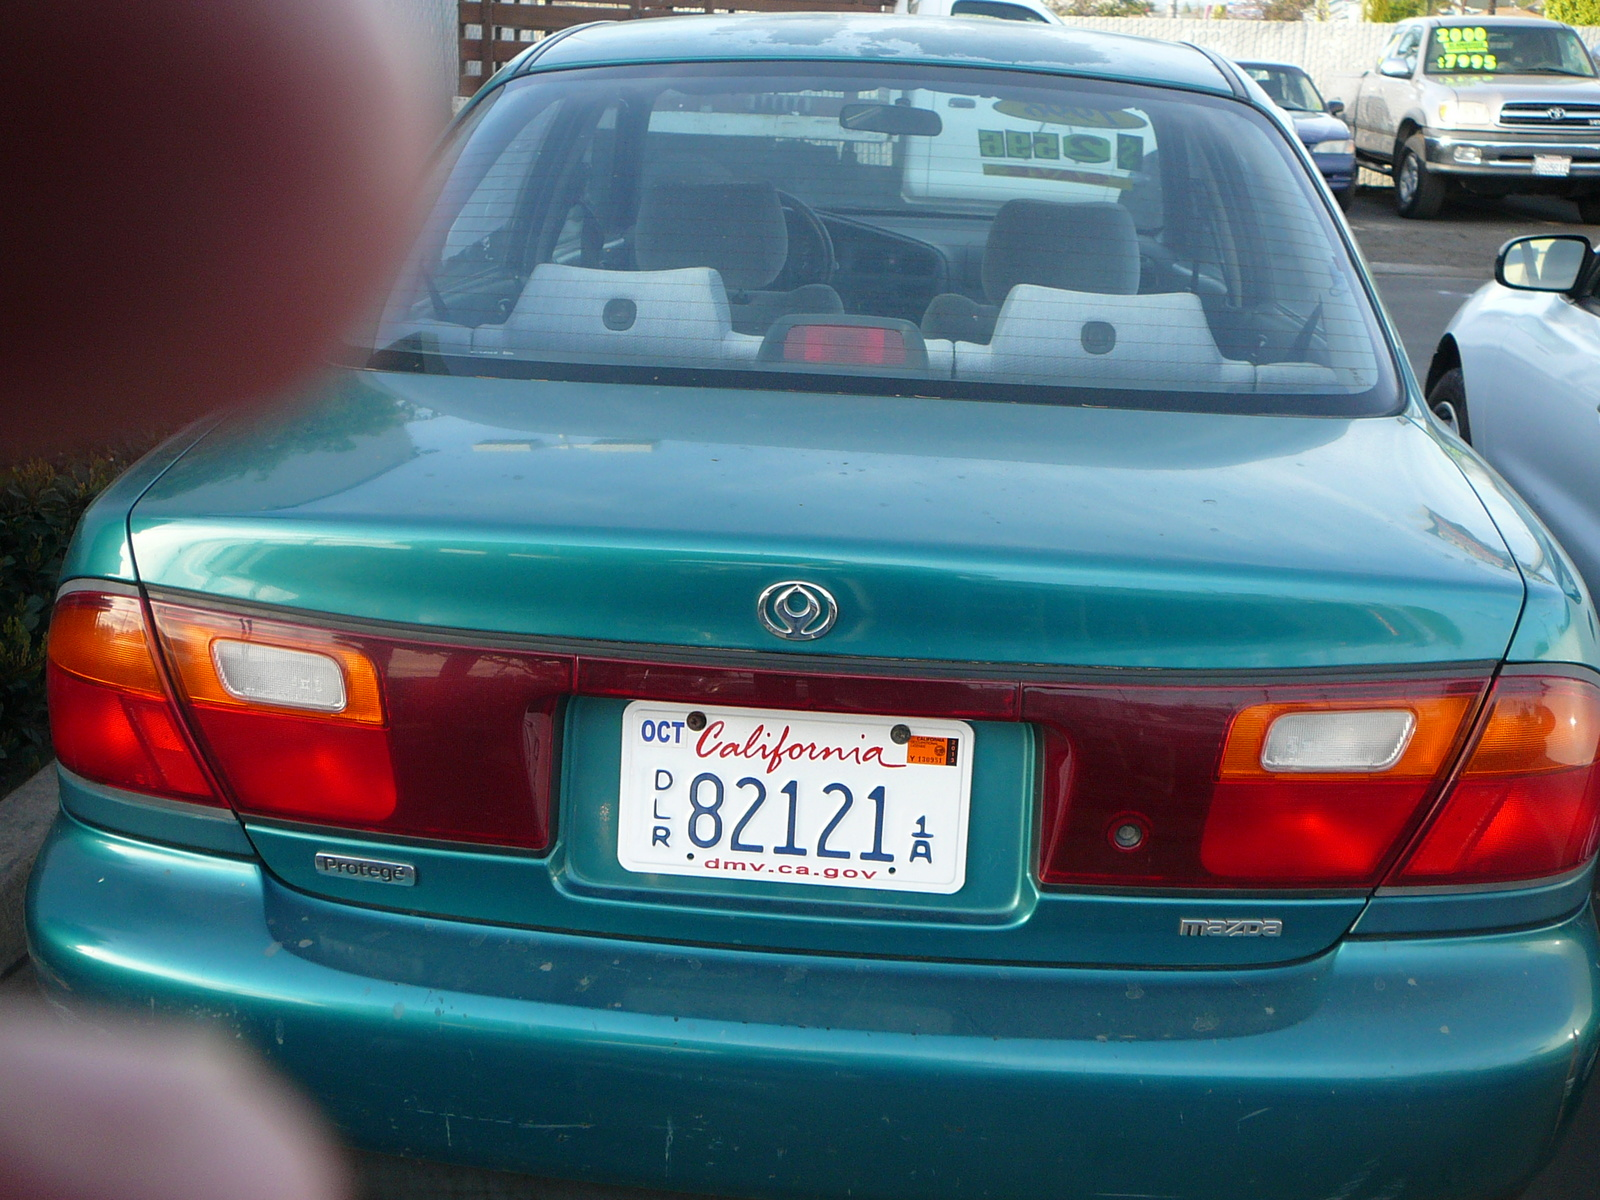 Picture of 1996 Mazda Protege 4 Dr LX Sedan